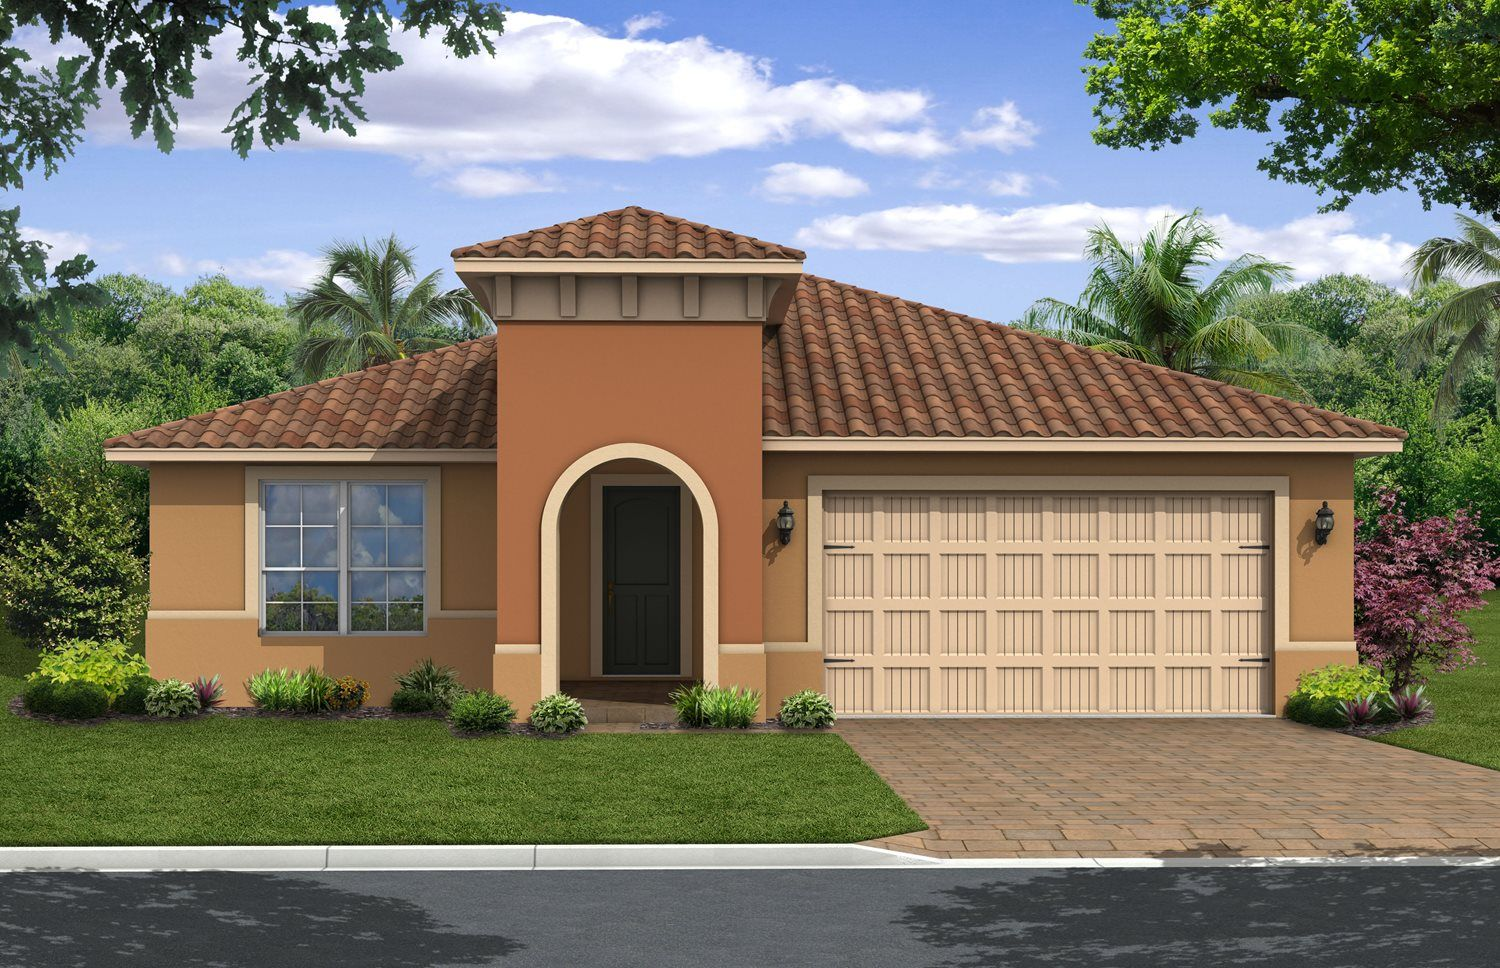 New Construction Homes & Plans in Kissimmee, FL | 2,856 Homes ...